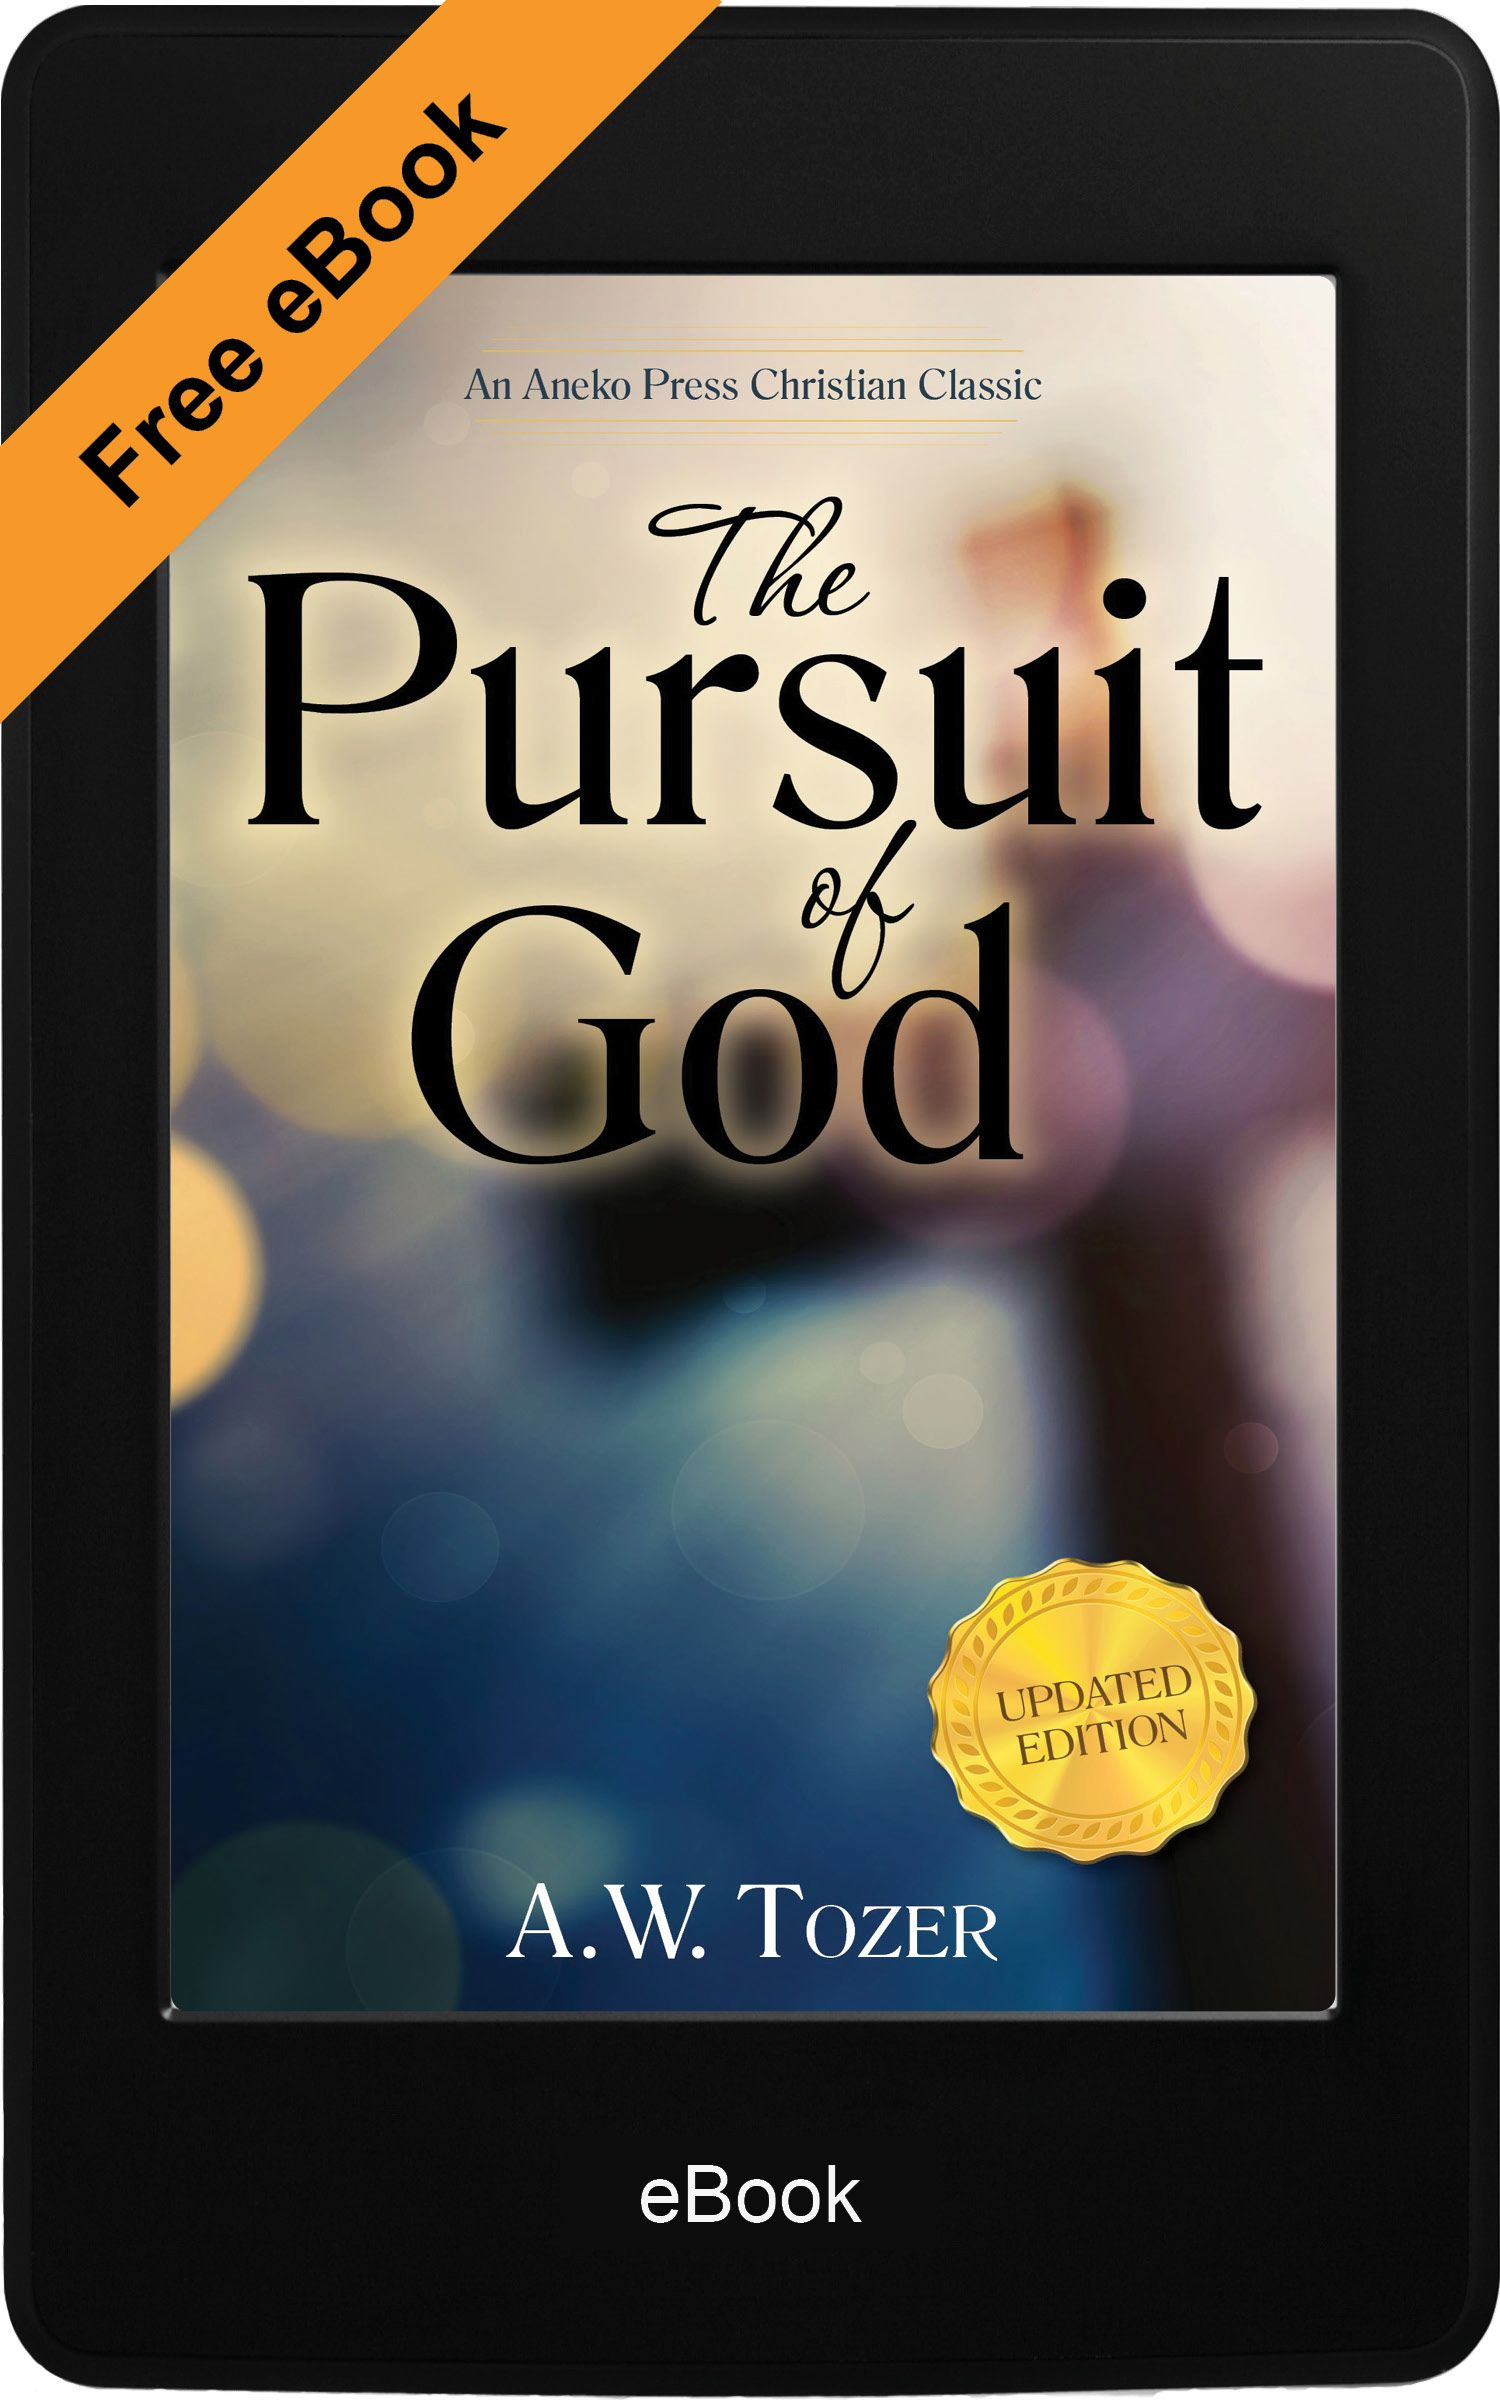 Best Religious Books 2019 The Pursuit of God (eBook) in 2019 | Free Christian ebooks for